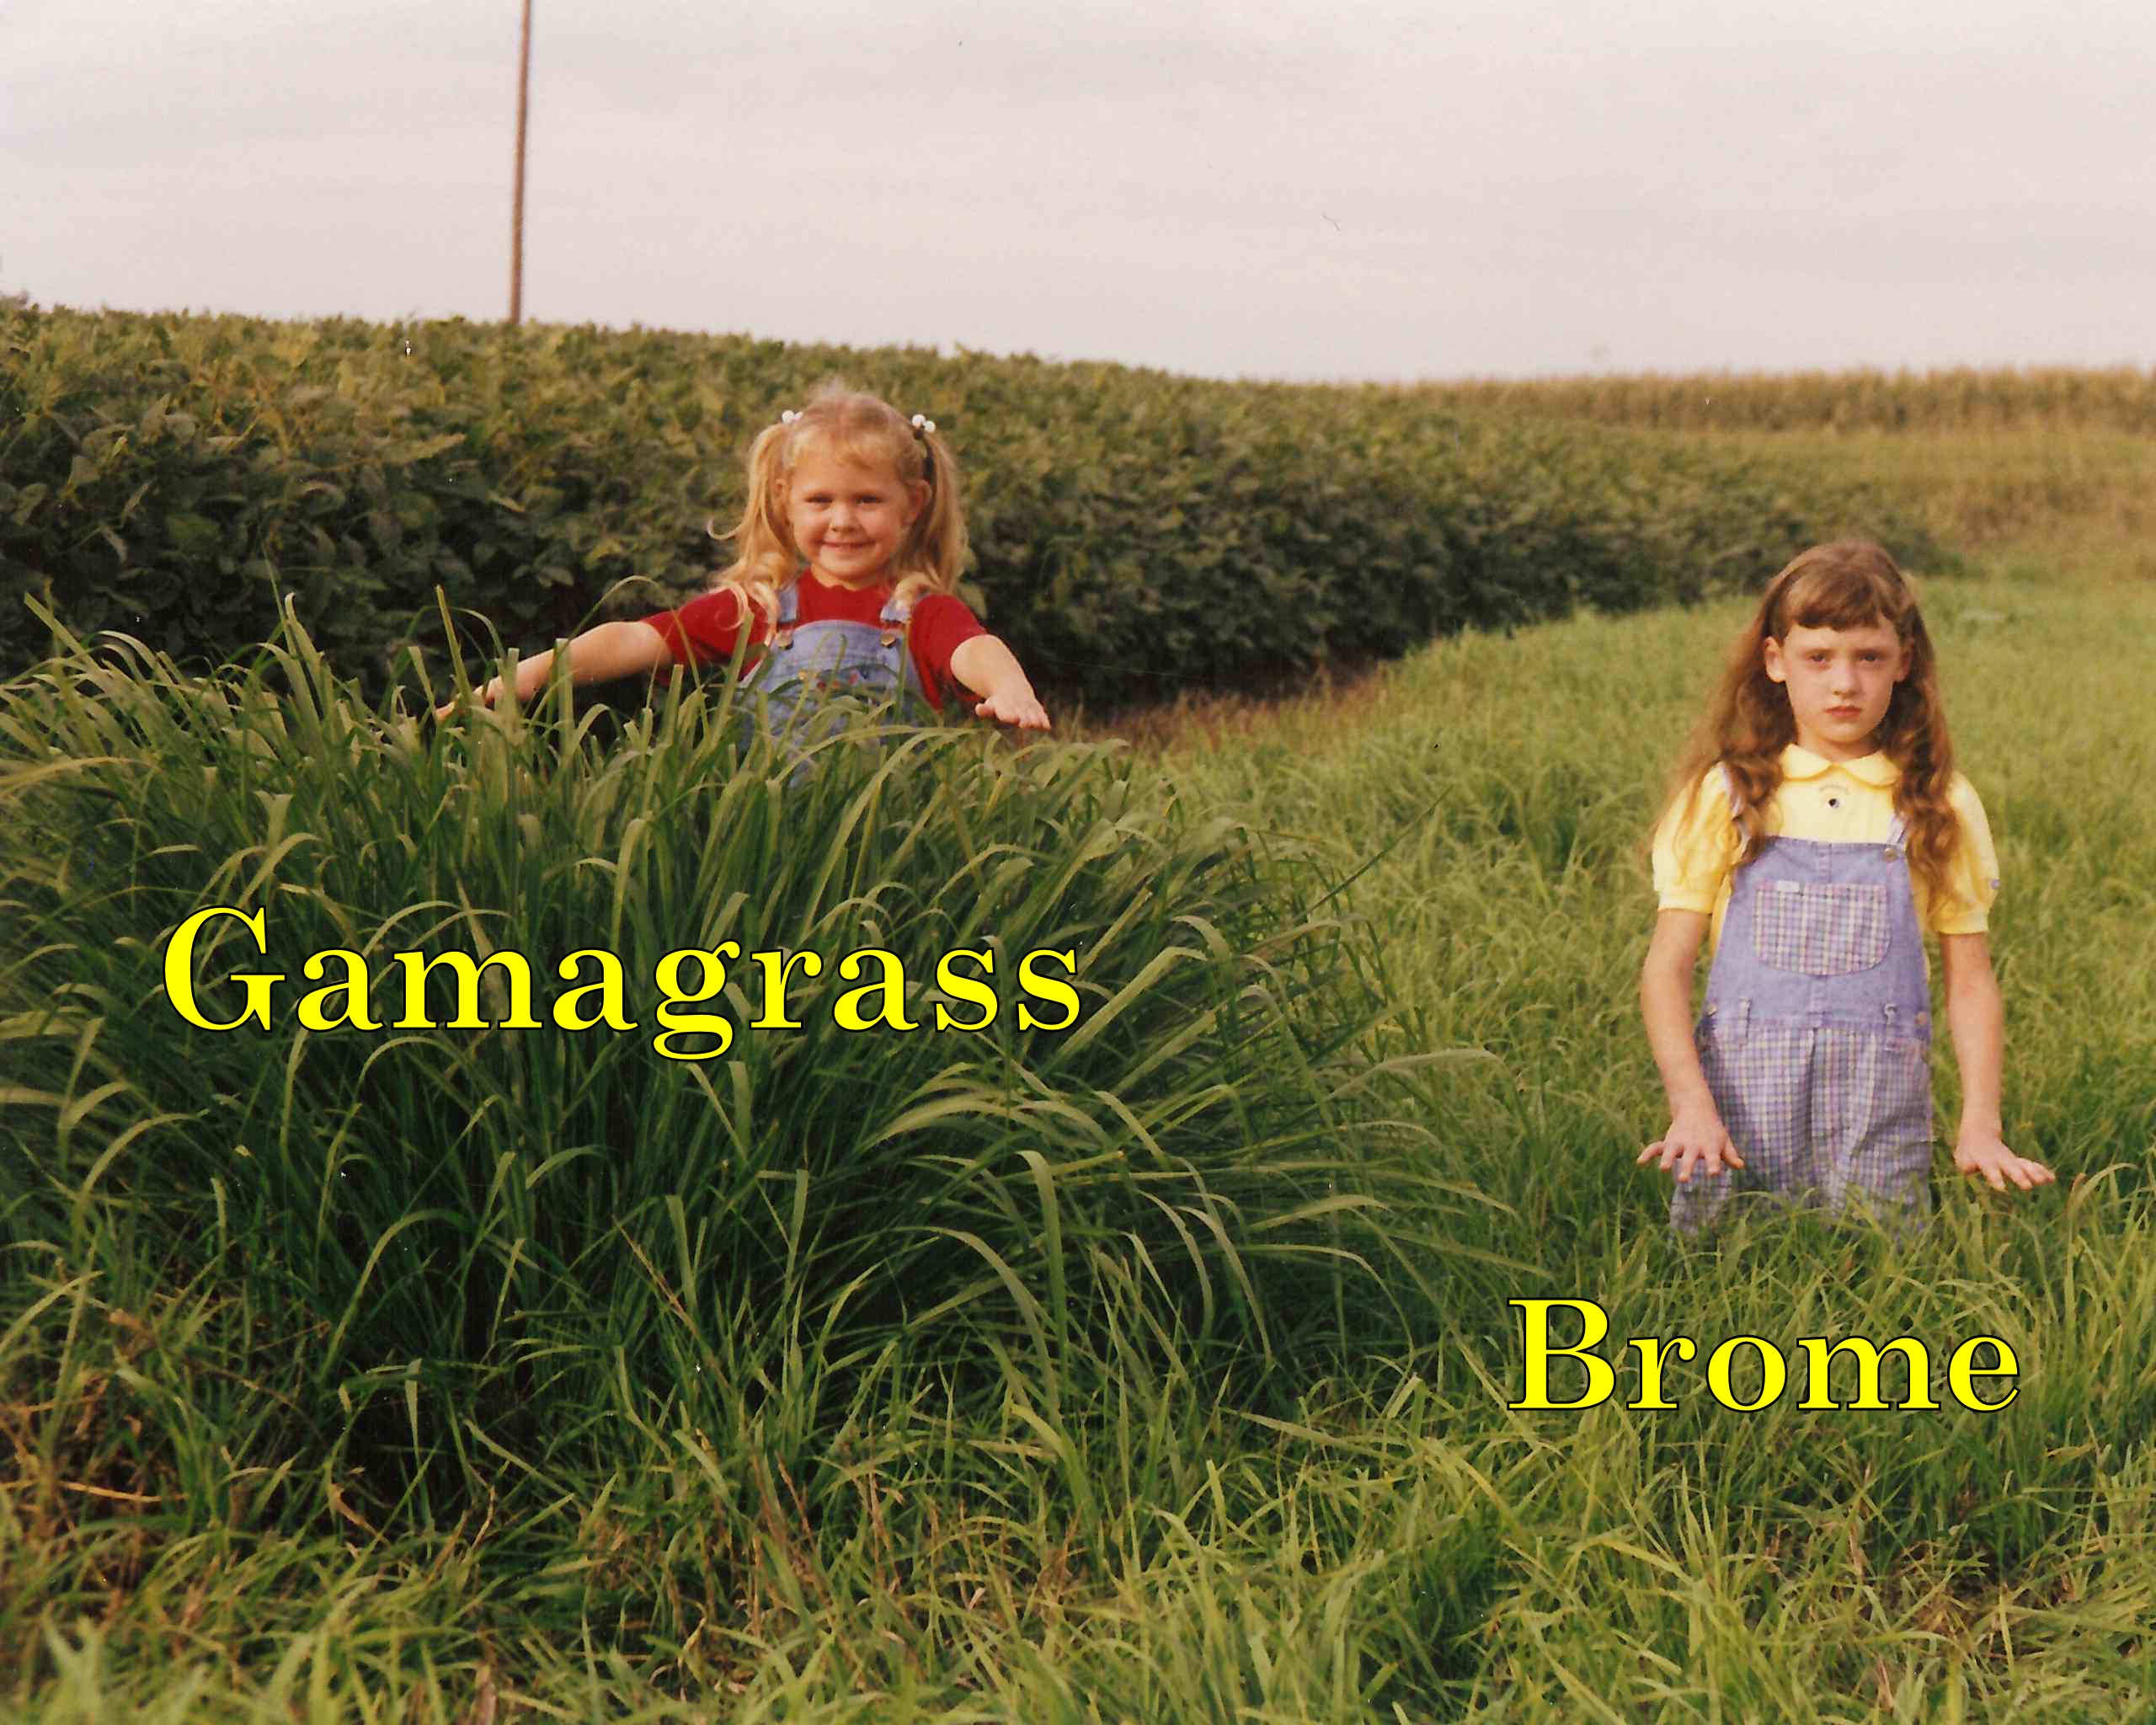 gg vs brome l&r wet